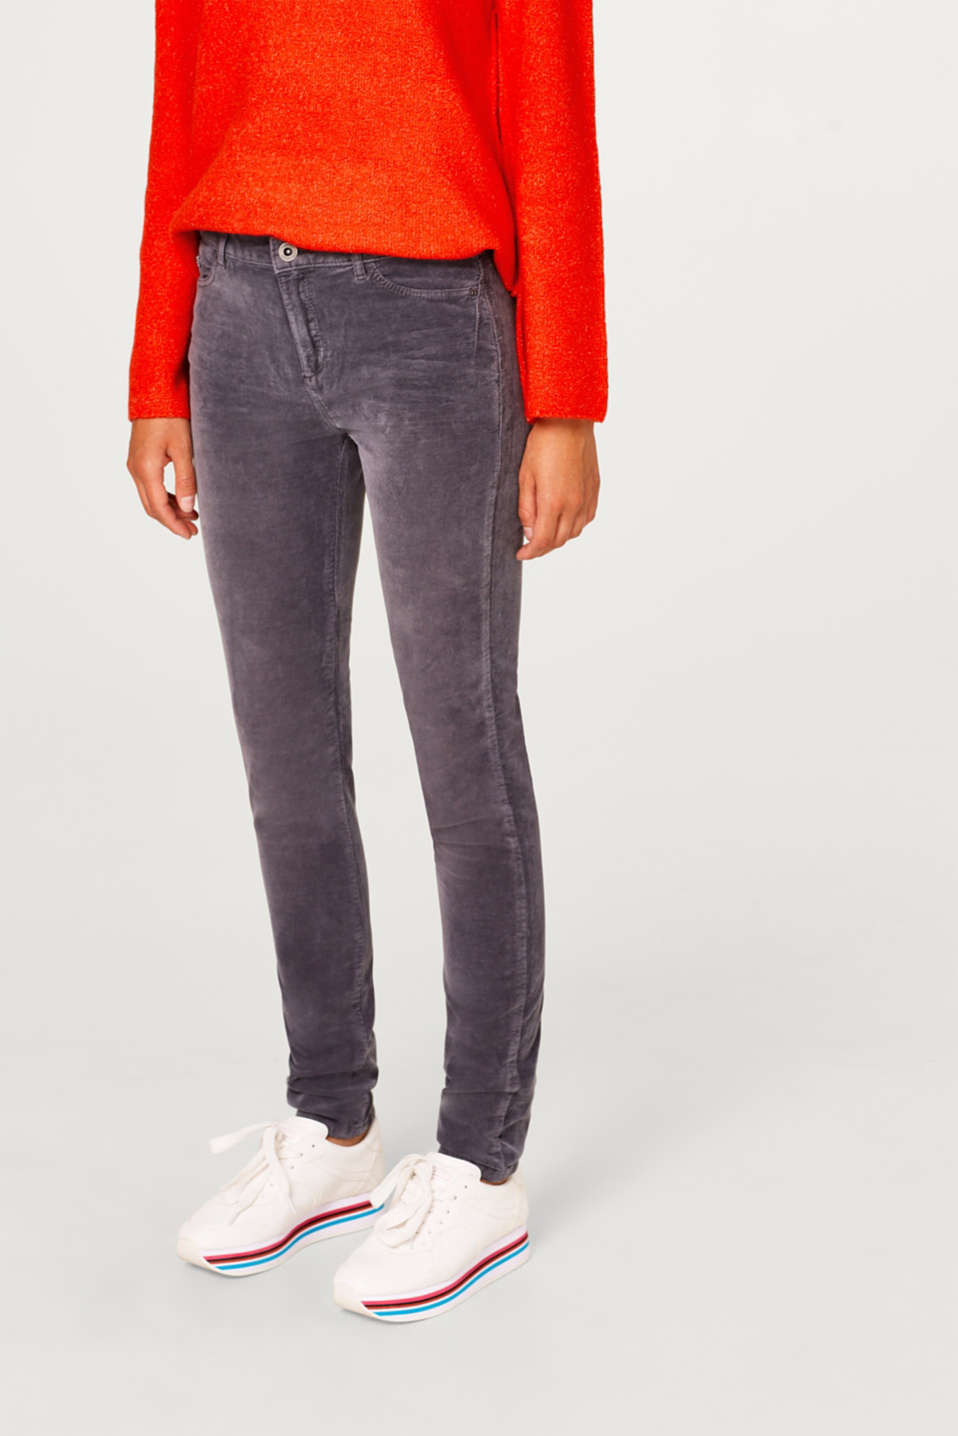 Esprit - Slim-fitting needlecord trousers with stretch